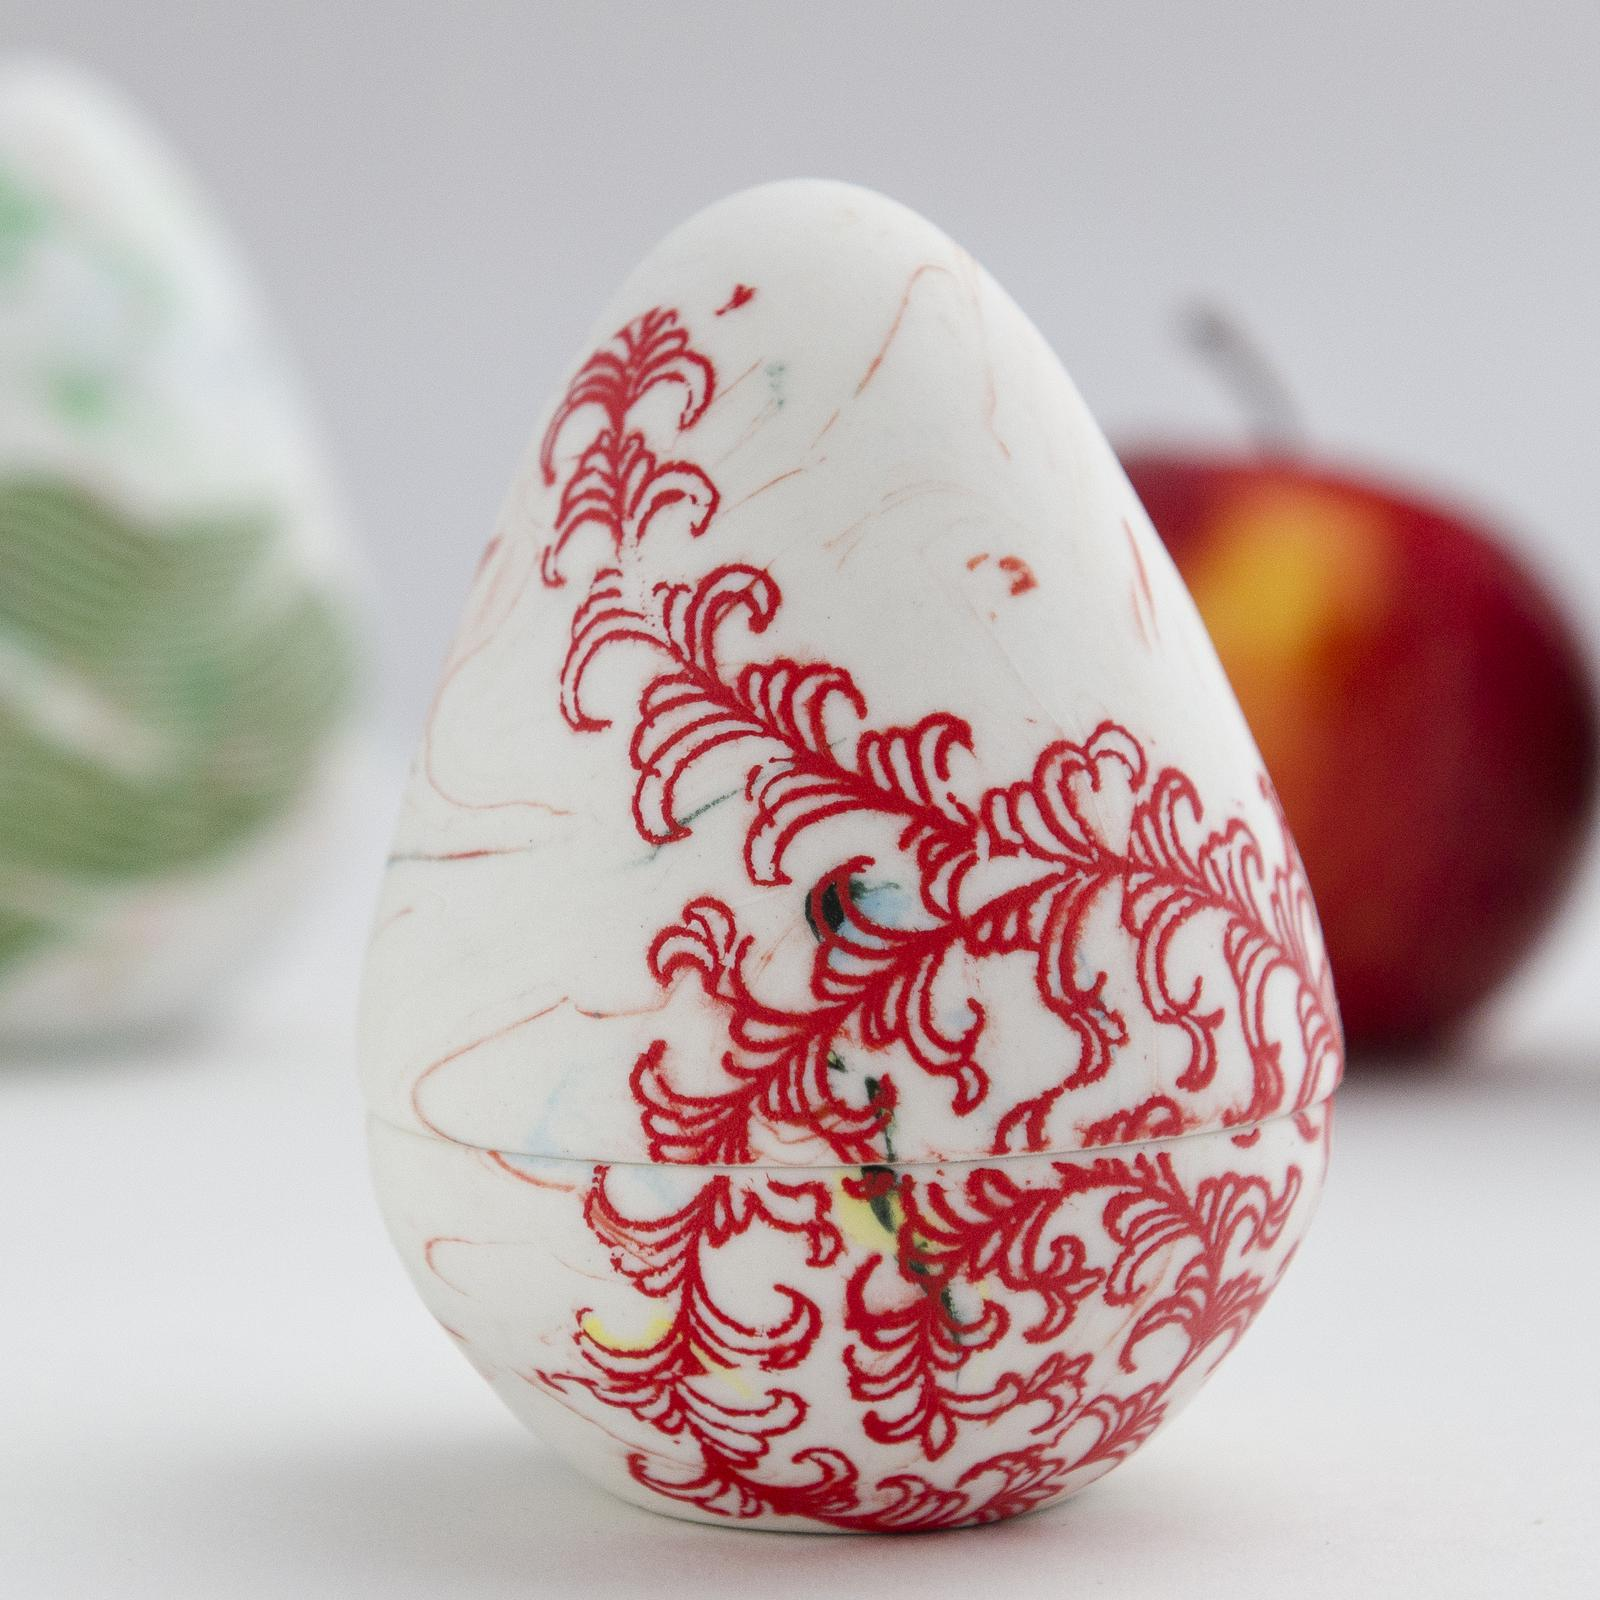 Marianne Annereau Ceramics Mermaid Egg